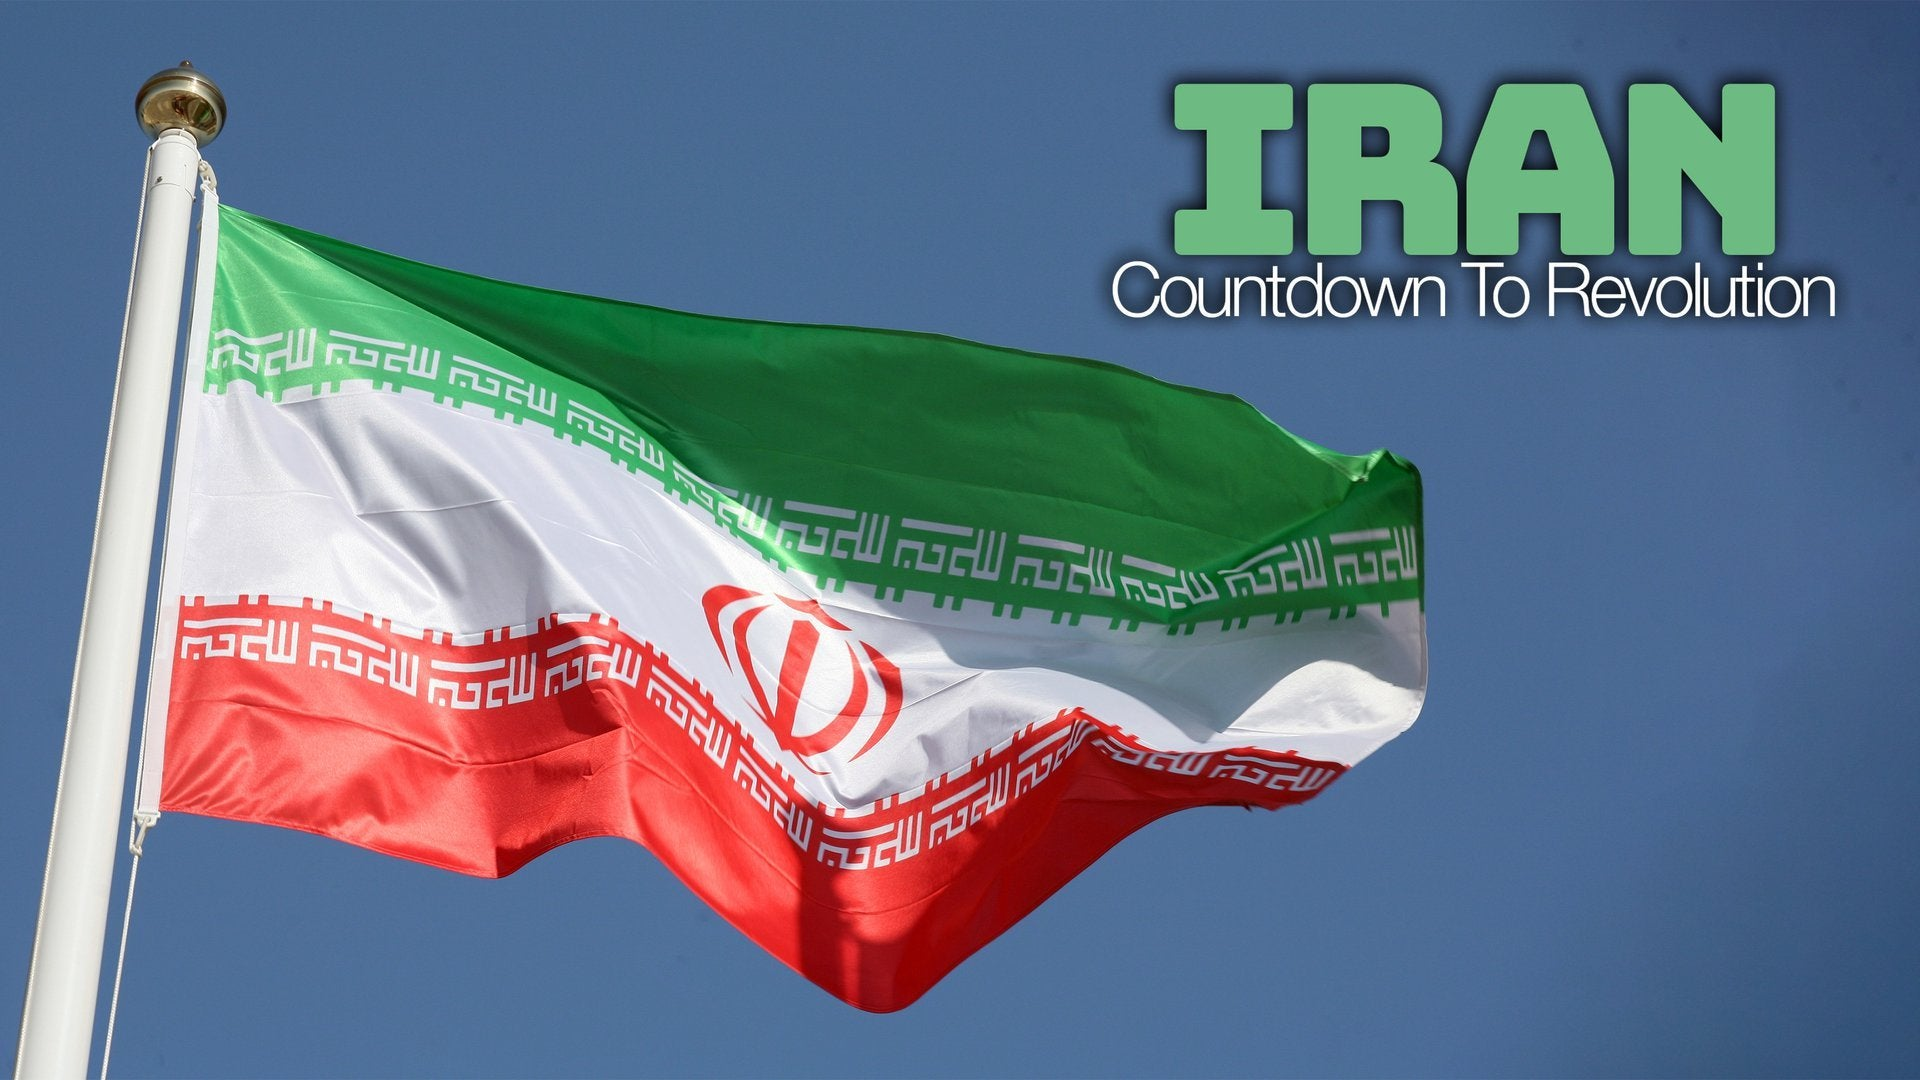 Iran: Countdown To Revolution